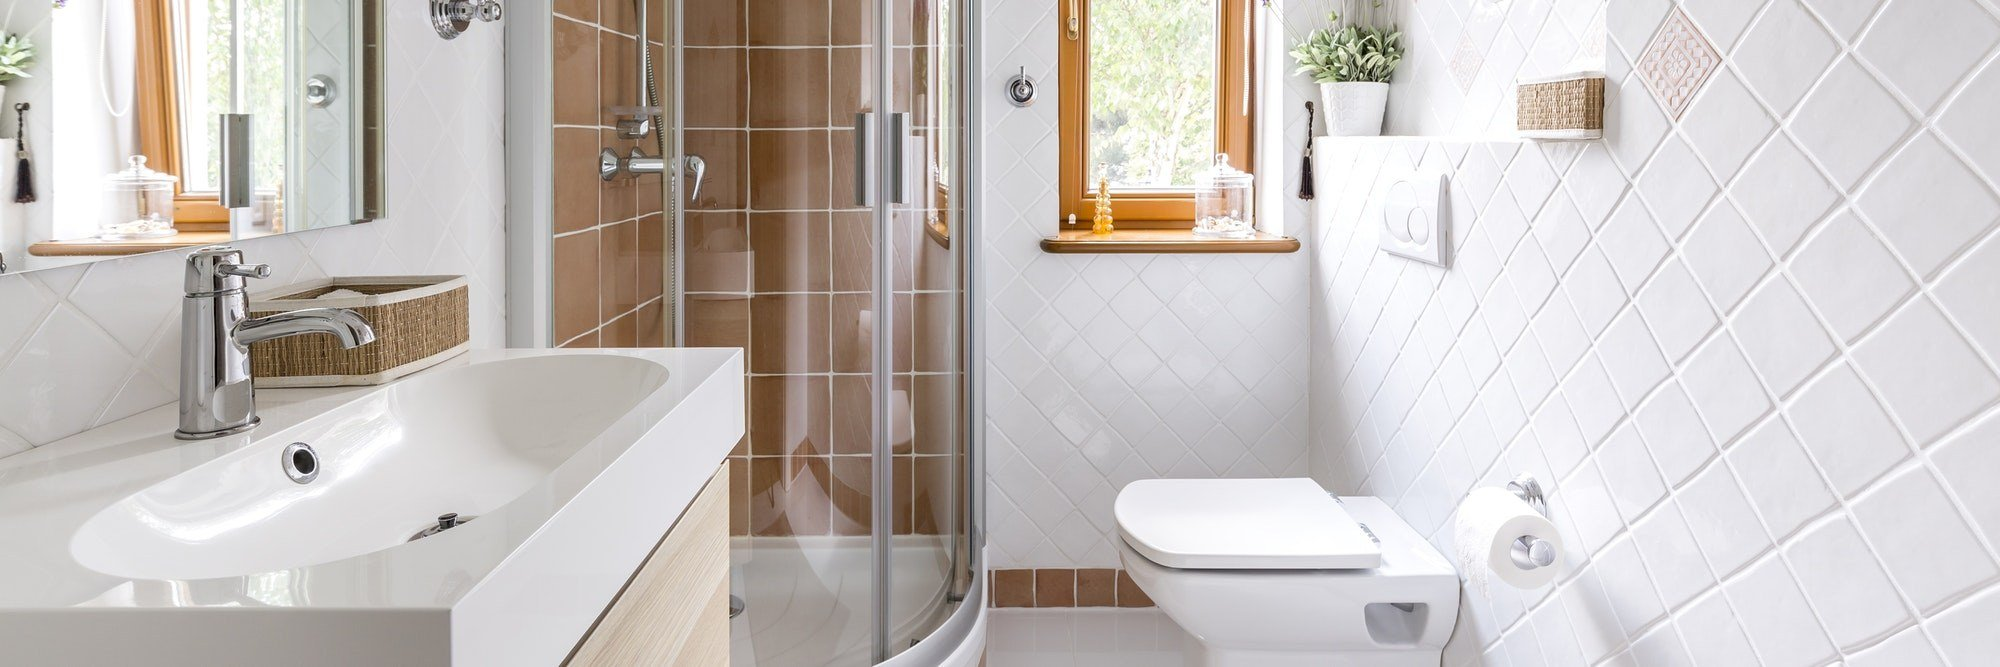 Small but functional bathroom with shower